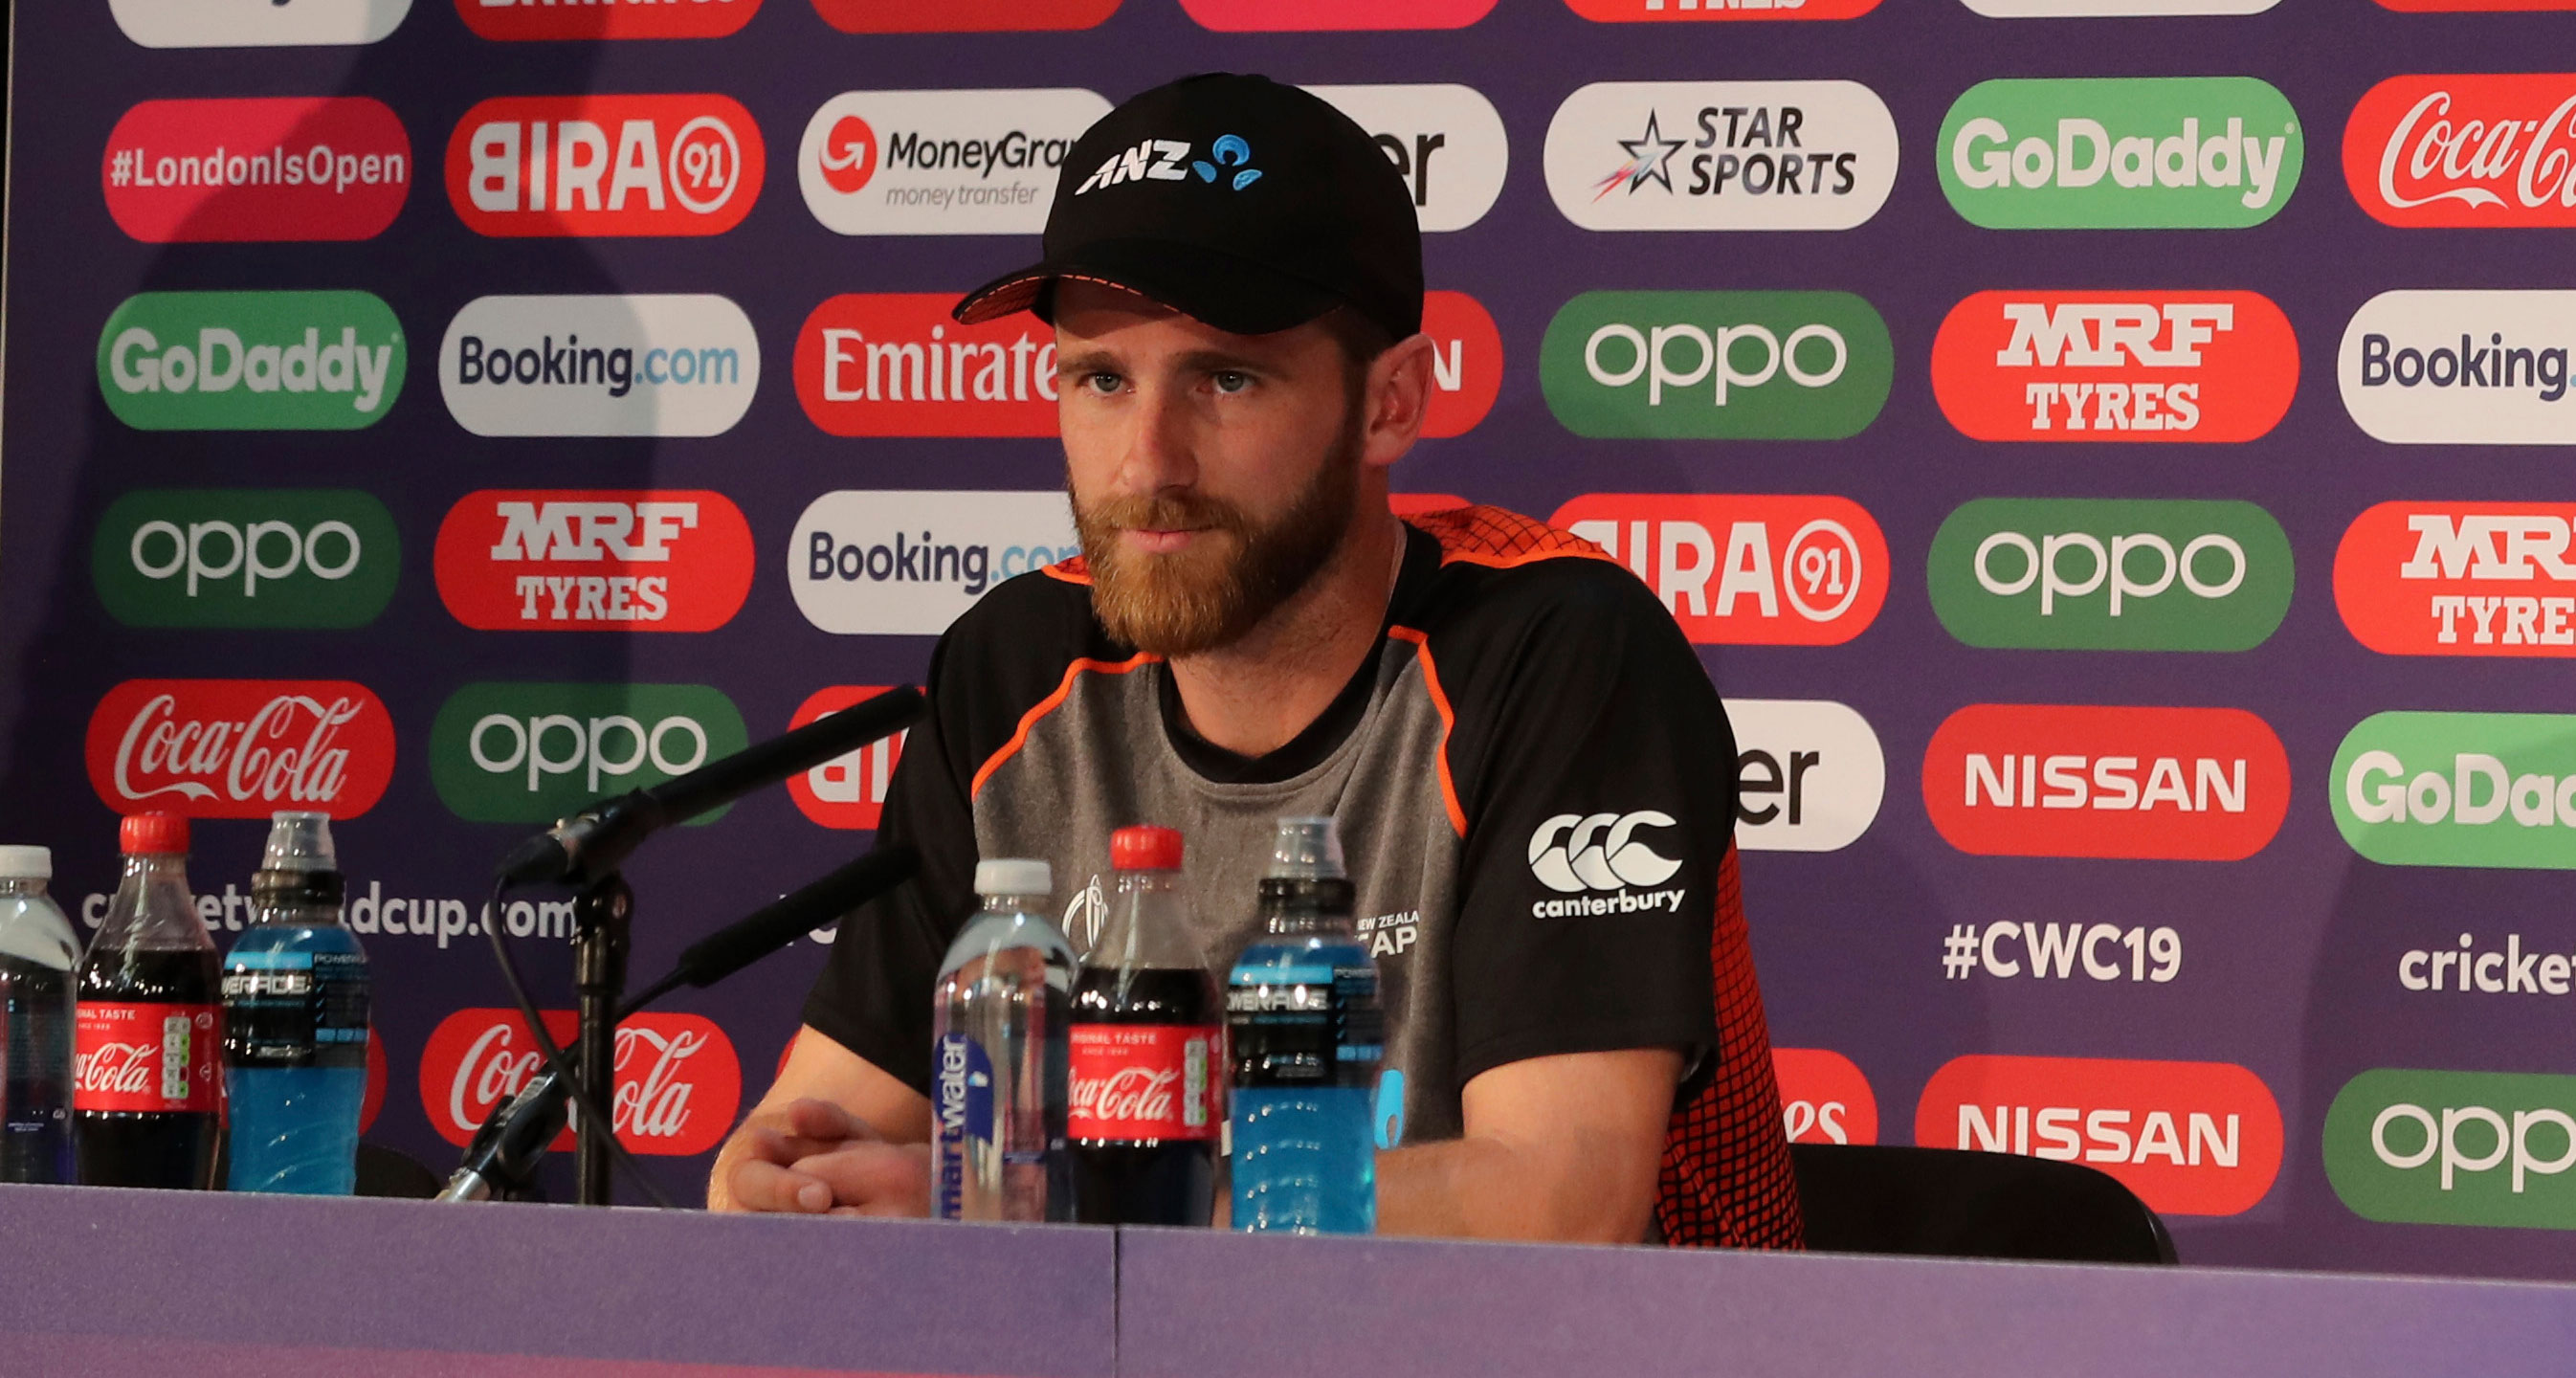 Kane Williamson during a press conference after attending a training session ahead of the ICC Cricket World Cup final match between New Zealand and England at Lord's cricket ground in London, on July 13, 2019.